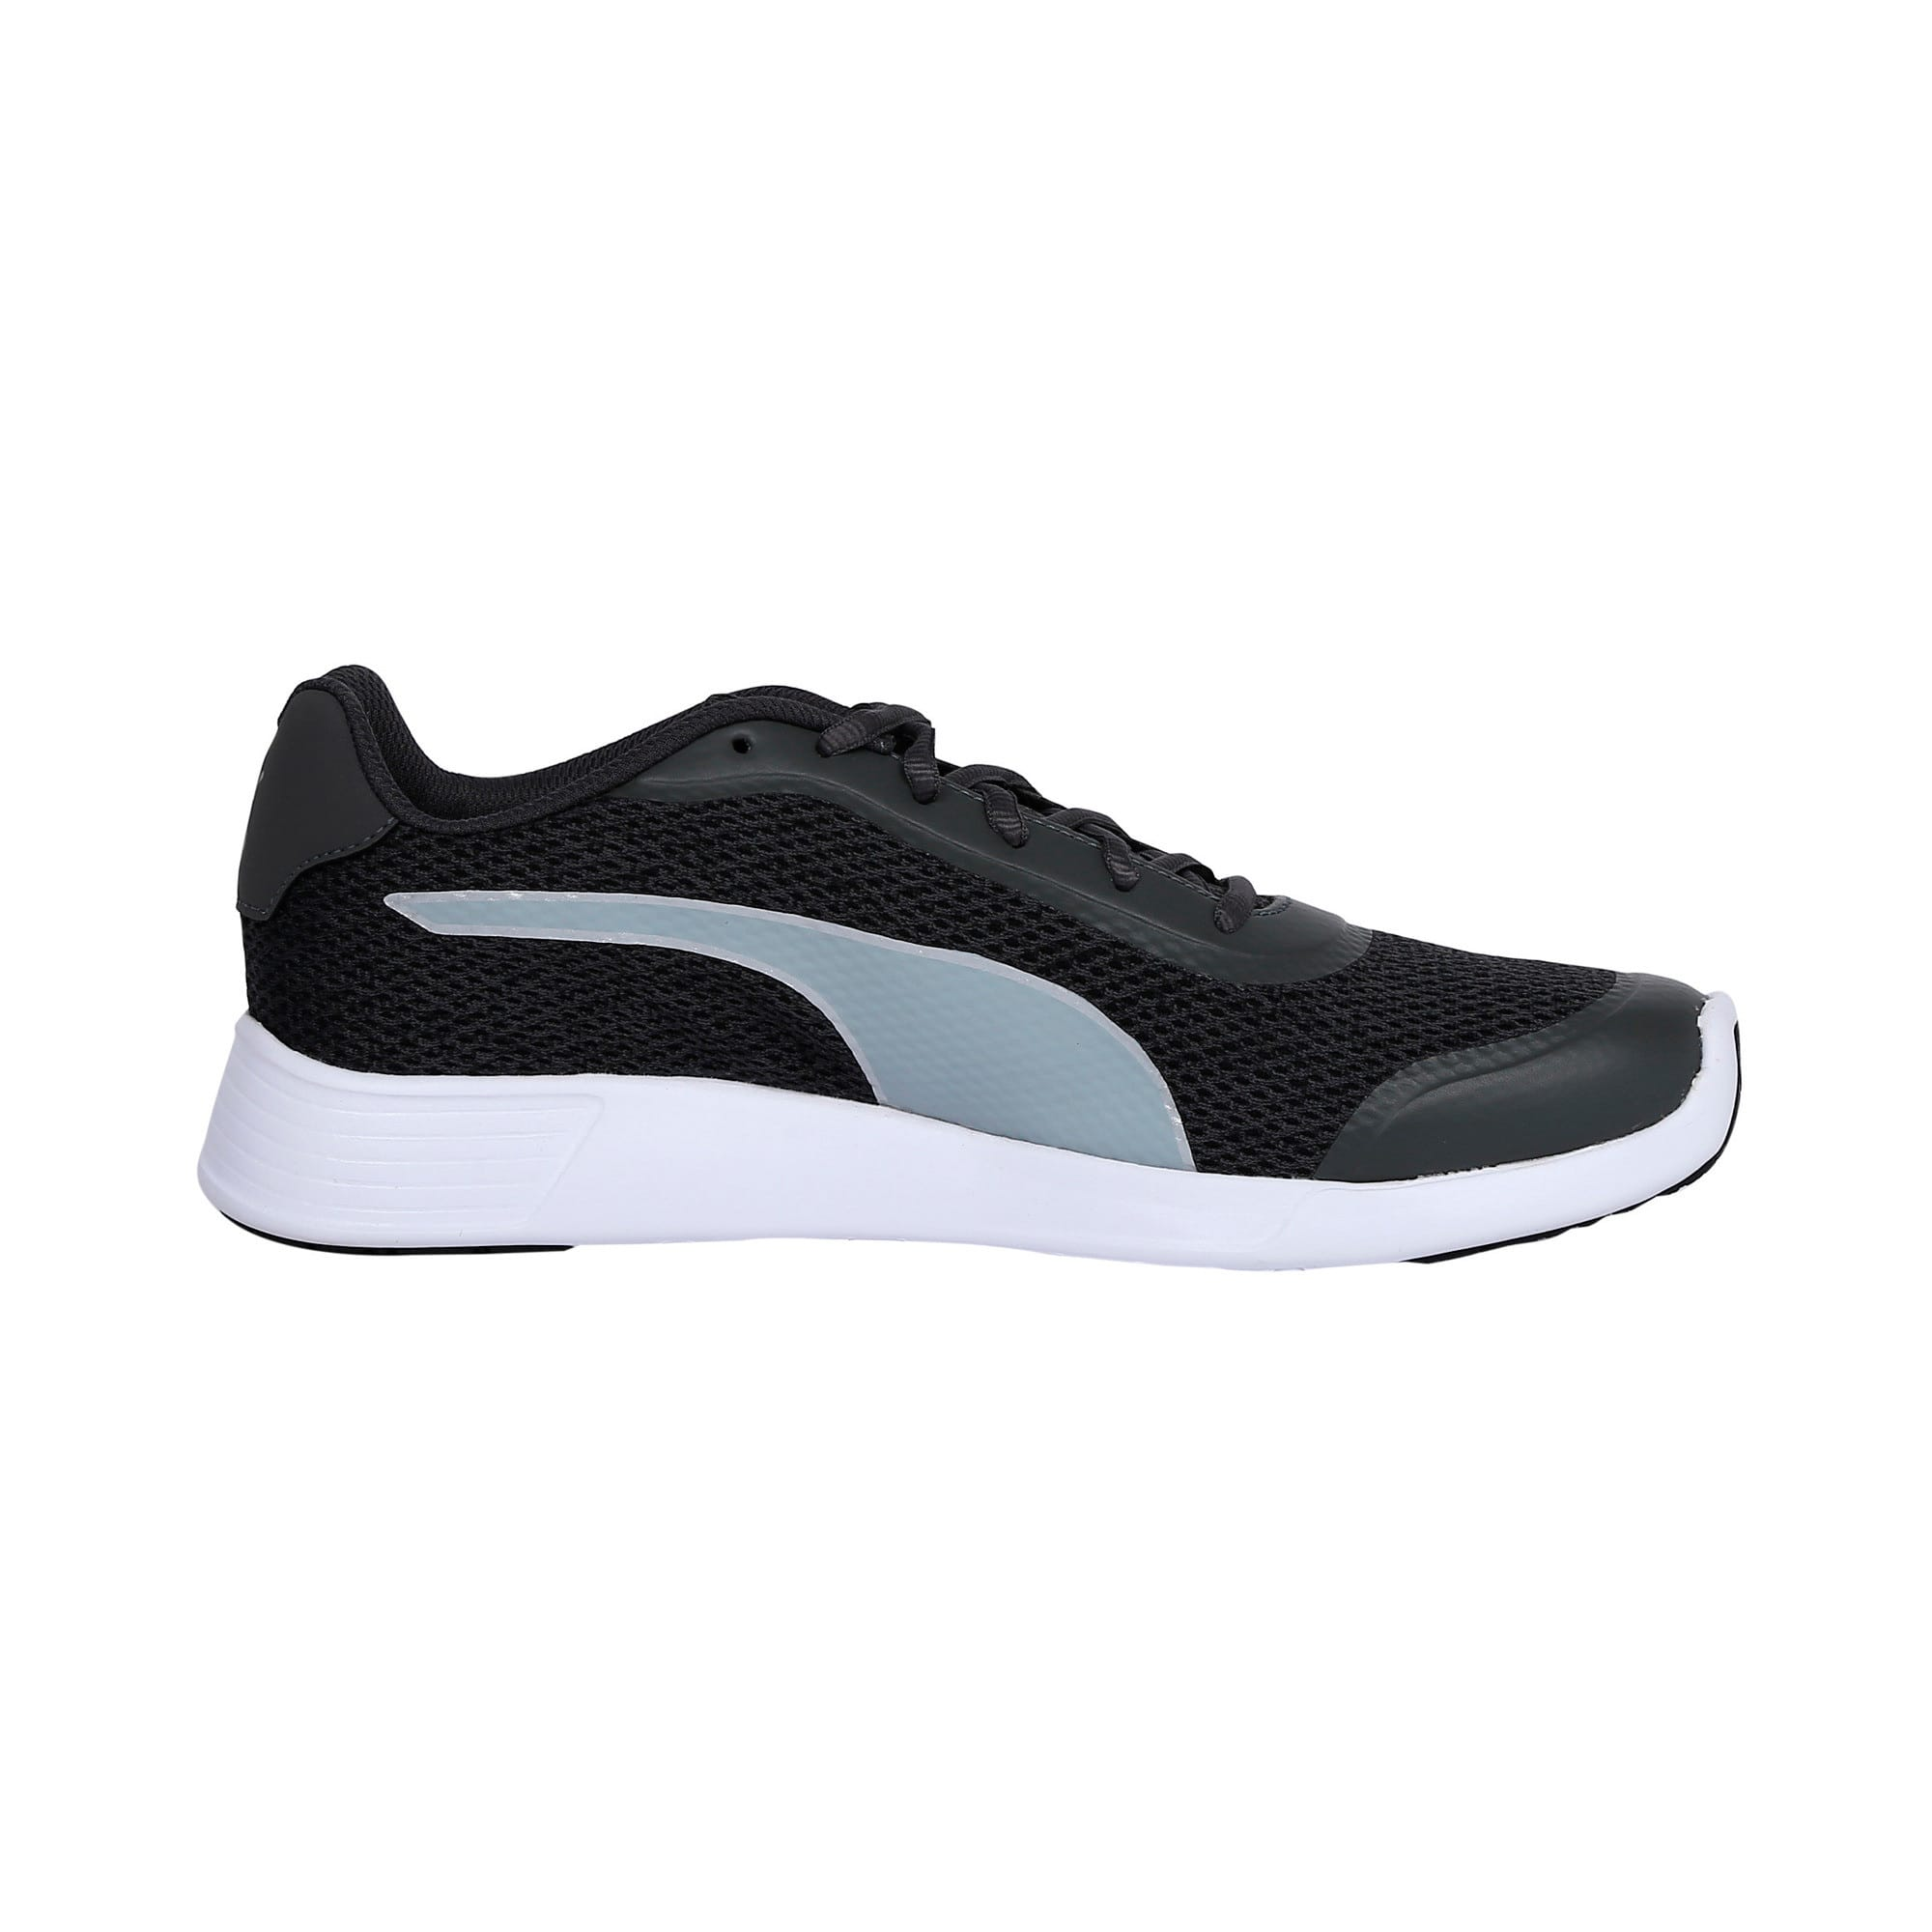 Thumbnail 5 of FST Runner v2 IDP Men's Sportstyle Shoes, Puma White-Quarry-Puma Black, medium-IND